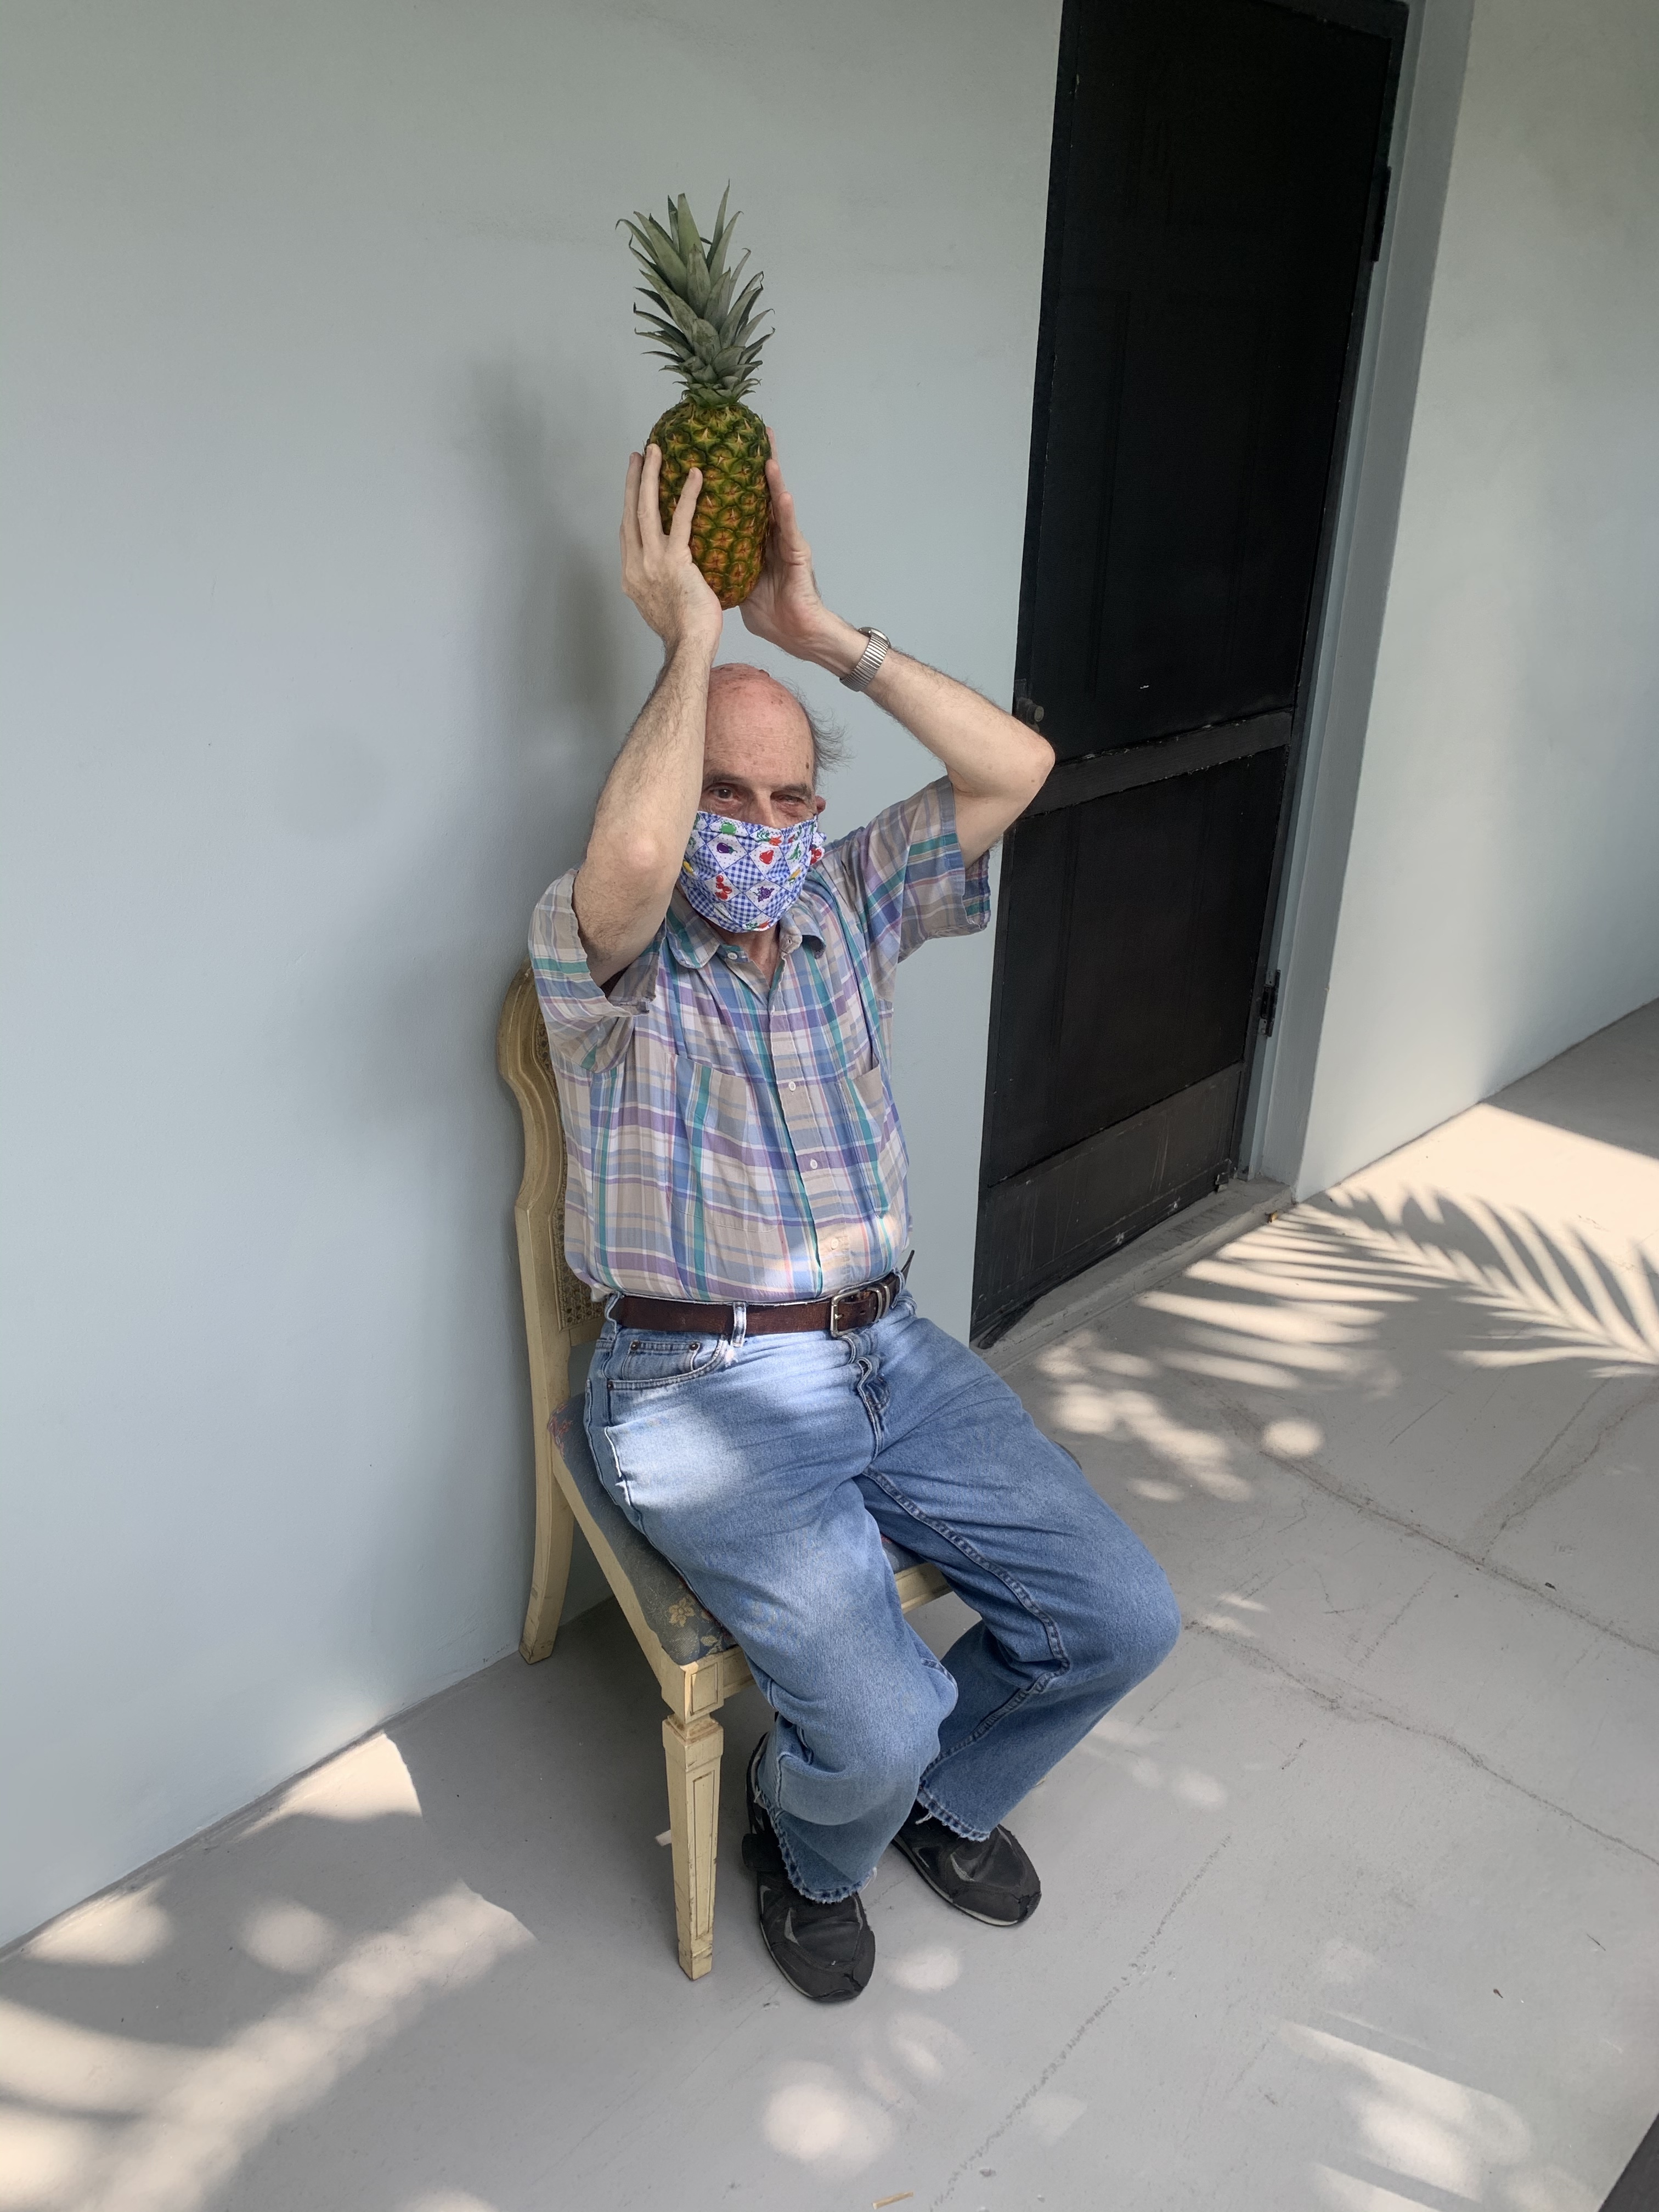 Exercise with pineapple